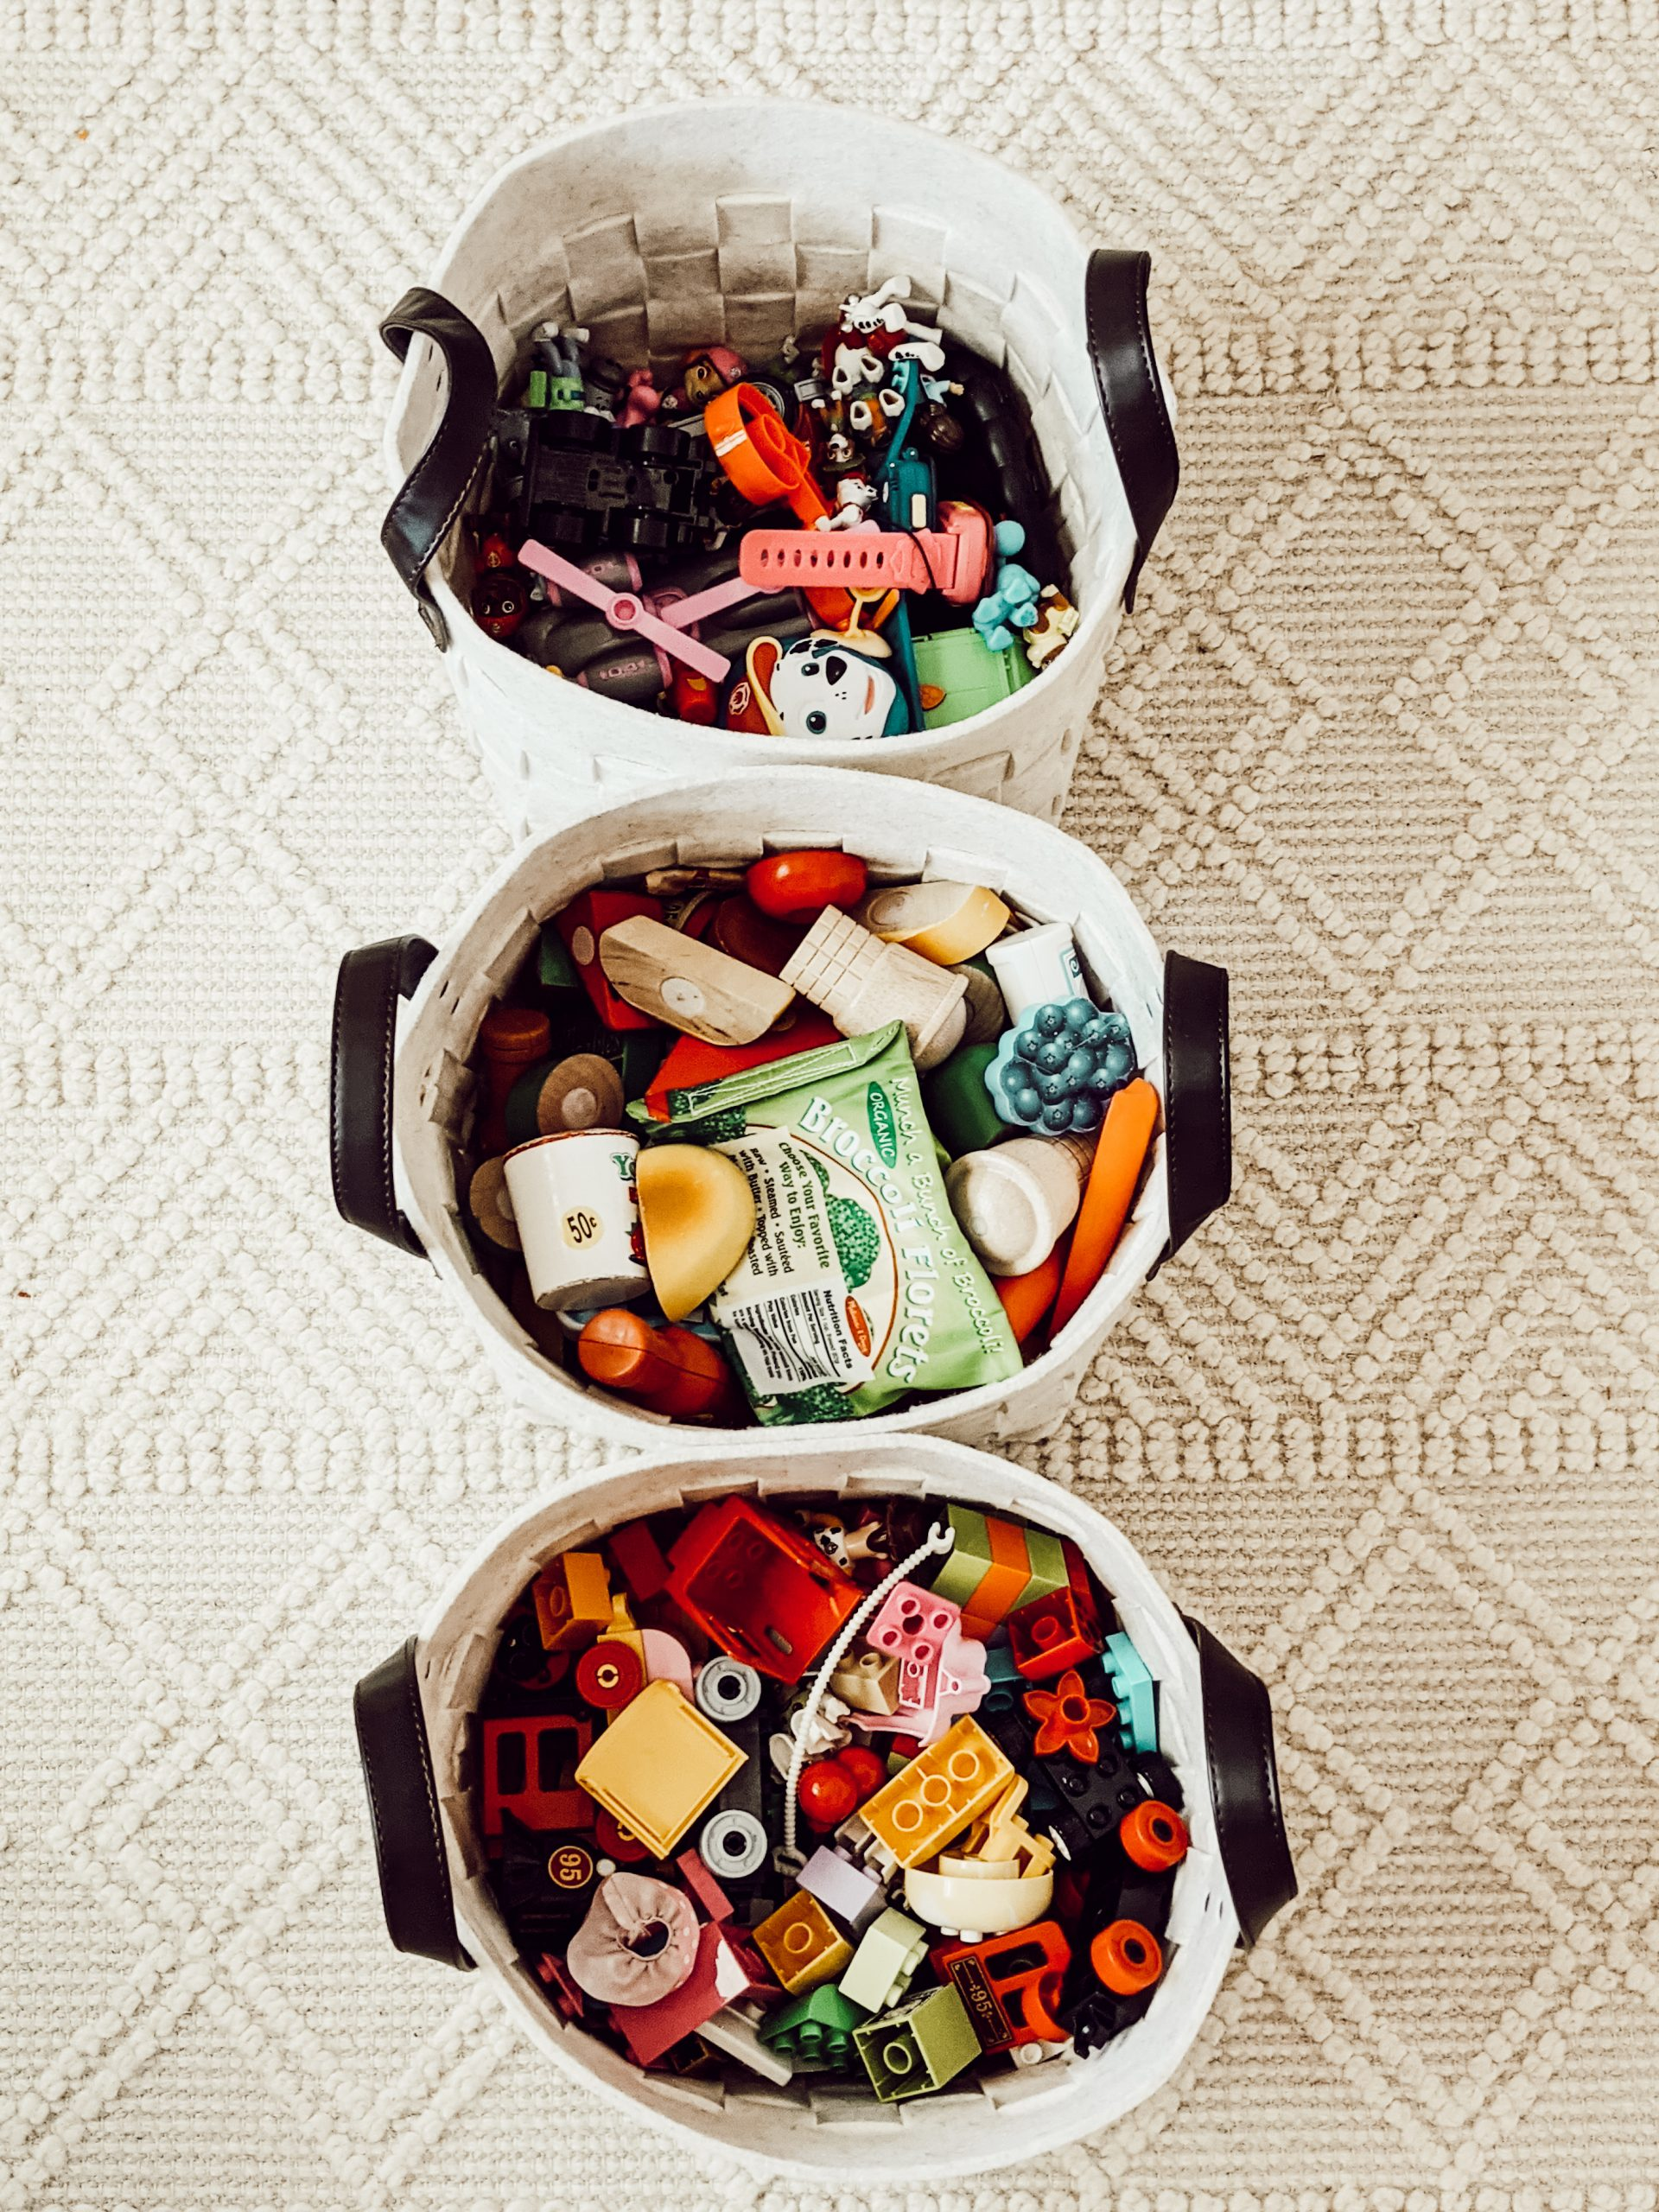 target storage baskets with toys